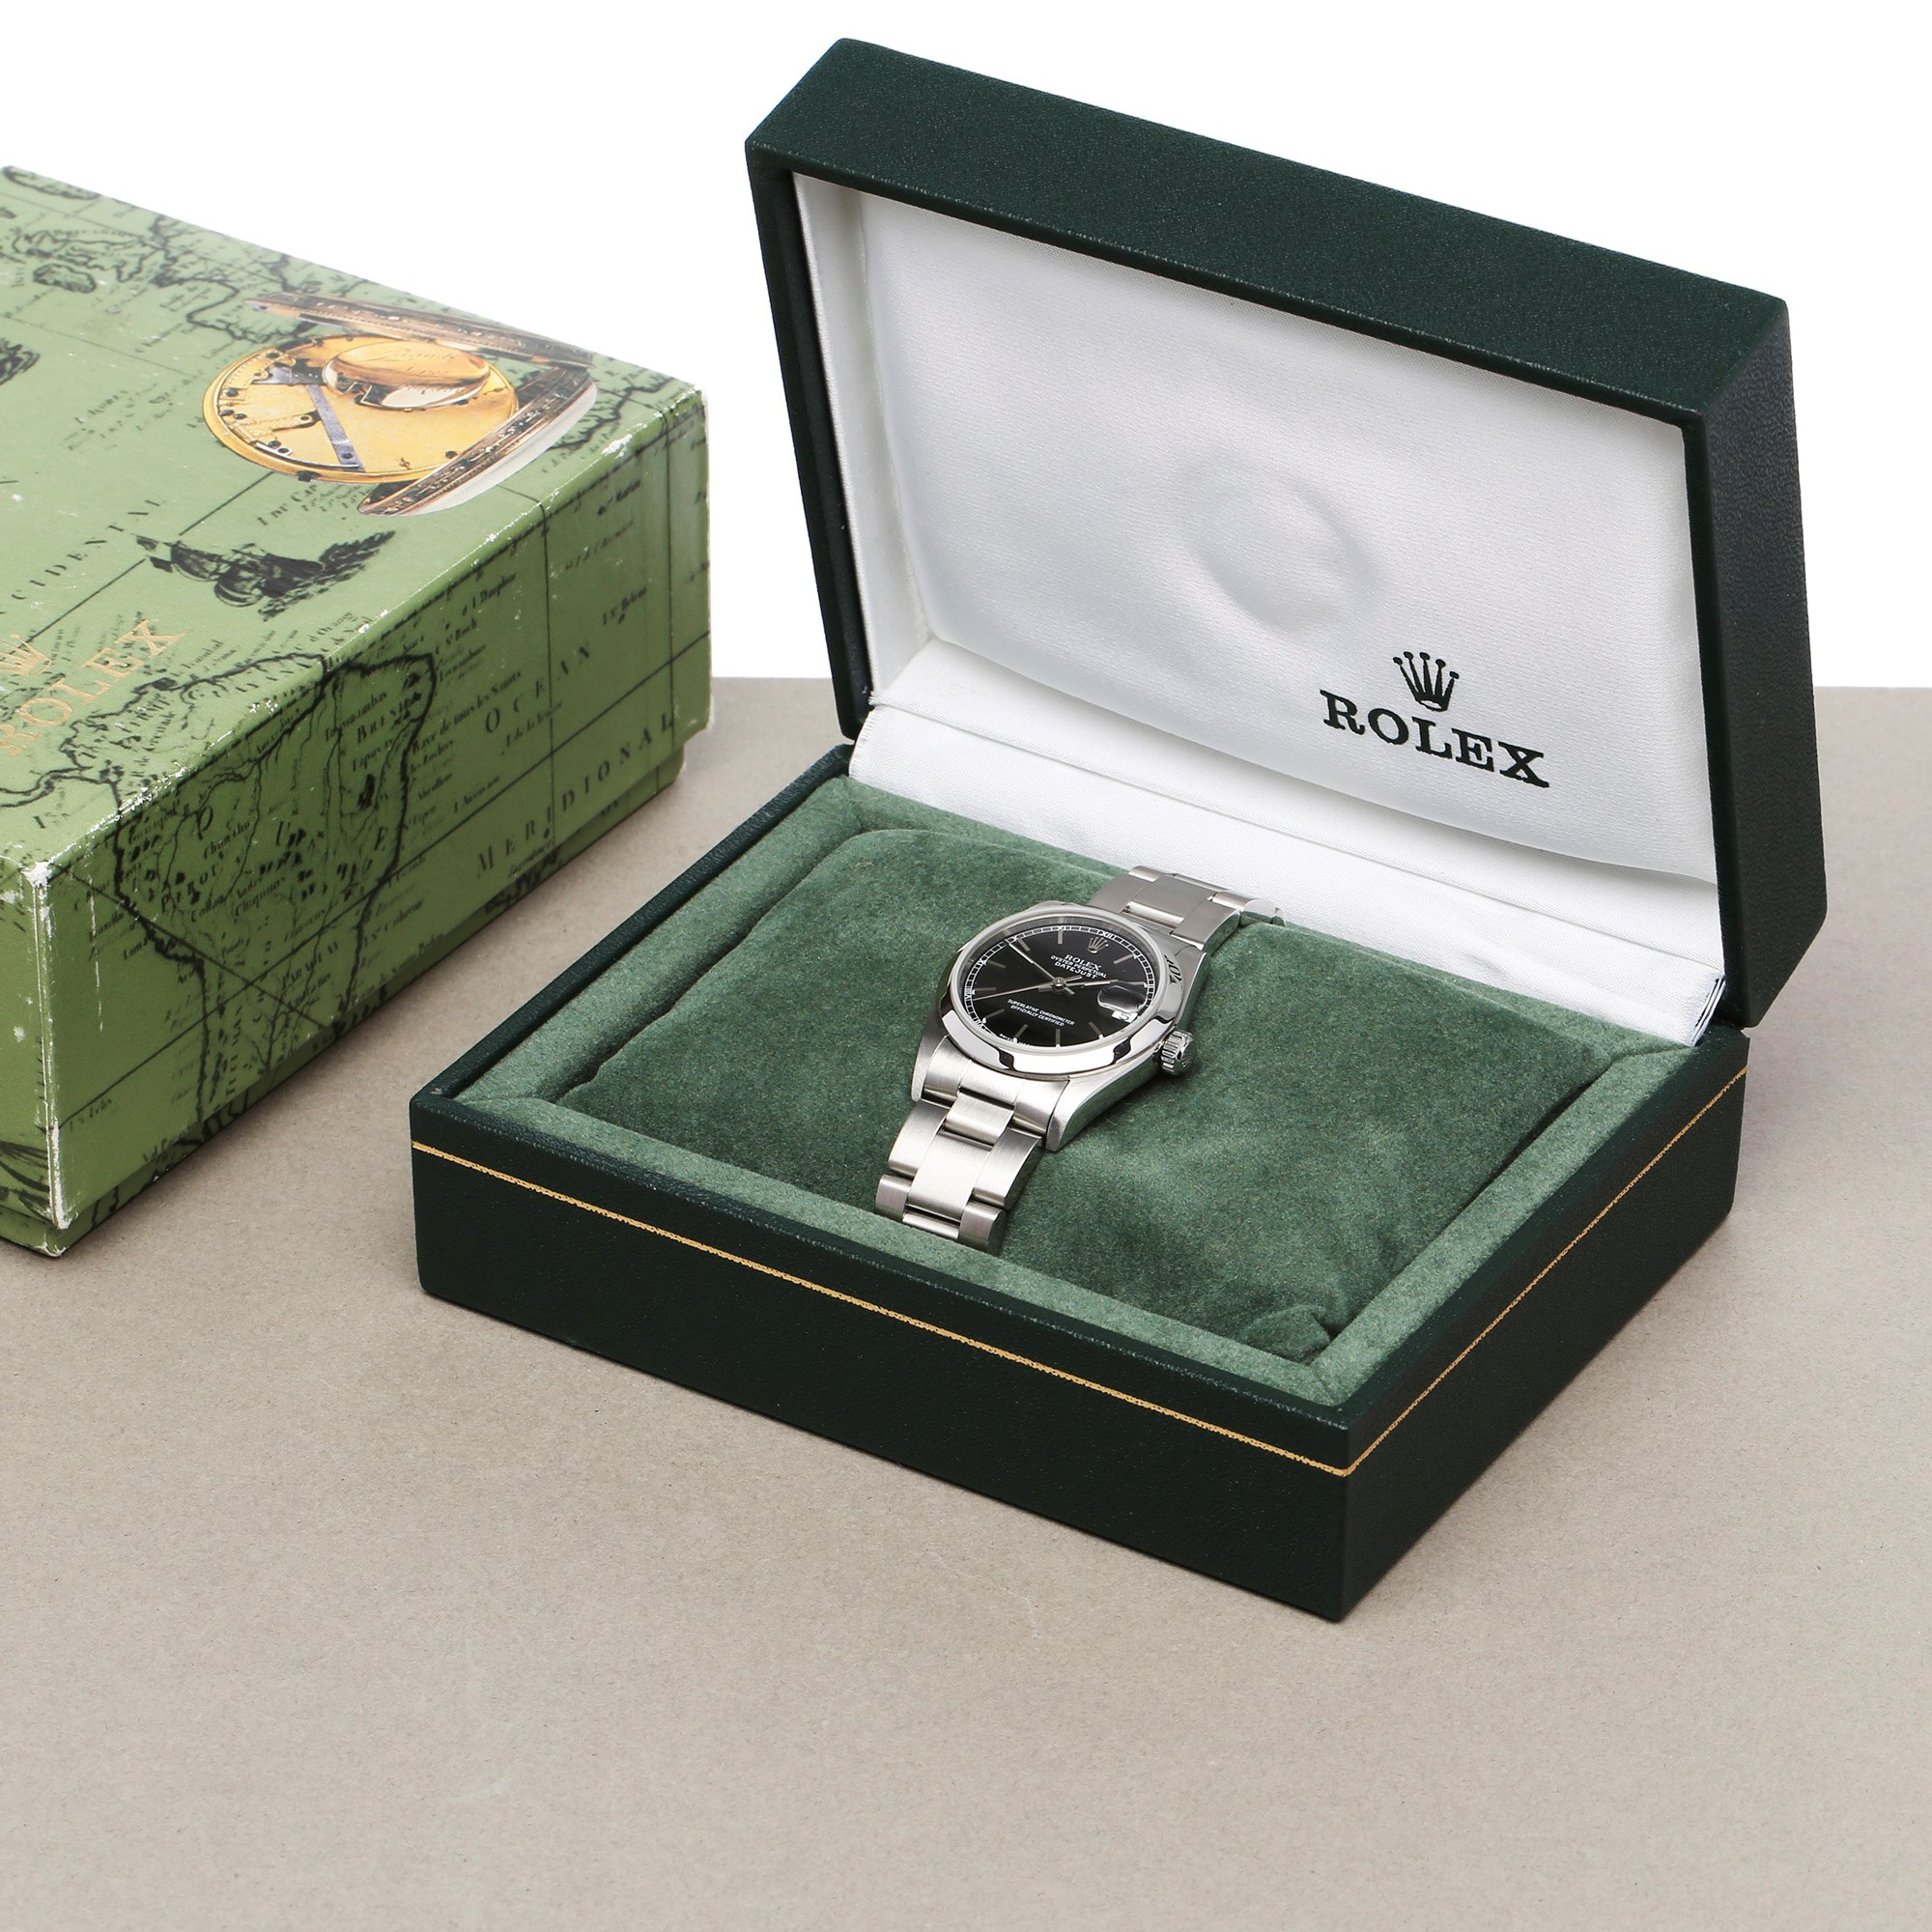 Rolex Datejust 31 78240 Ladies Stainless Steel Watch - Image 3 of 10